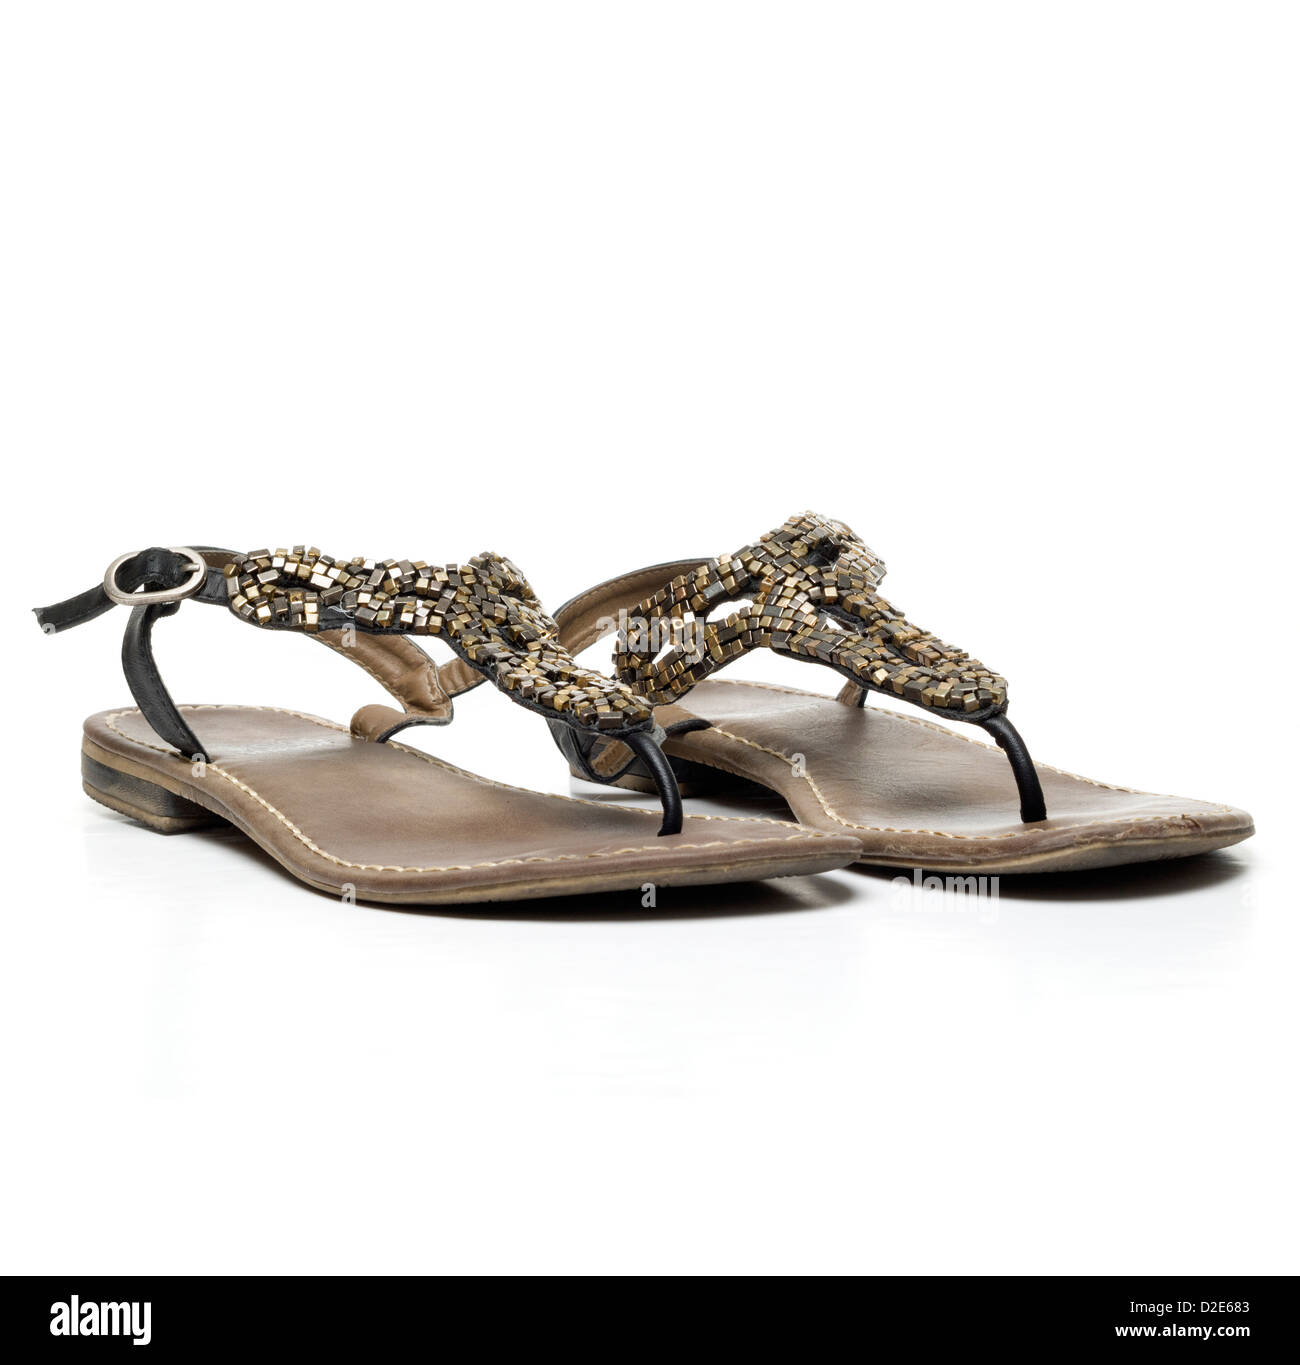 Pair of sandals isolated on white background - Stock Image